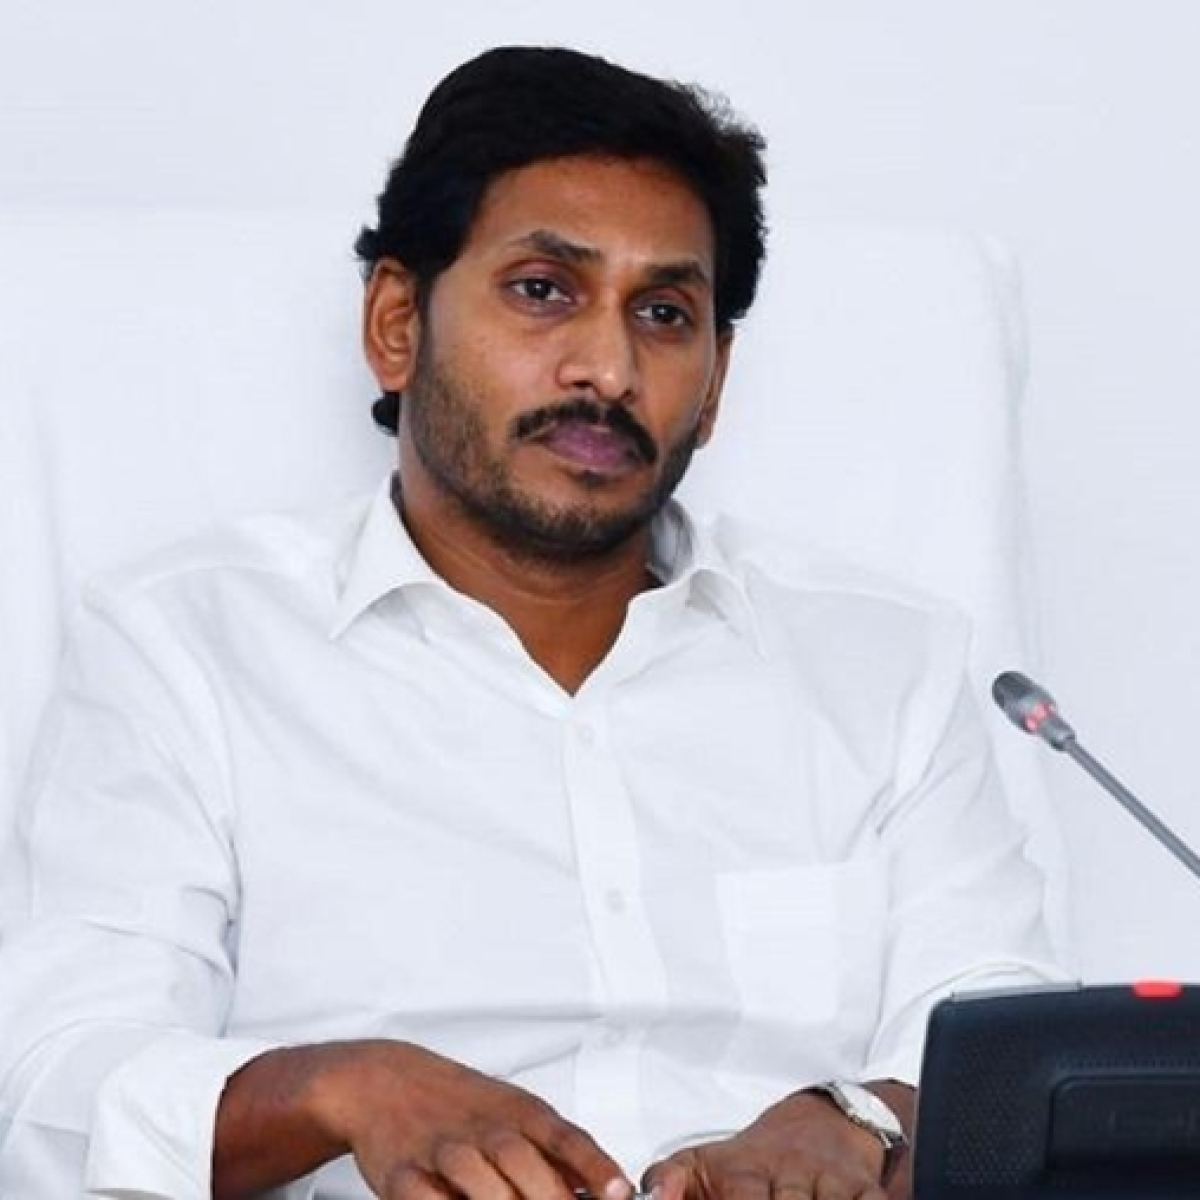 50 percent market chairpersons to be women, says Andhra Pradesh CM